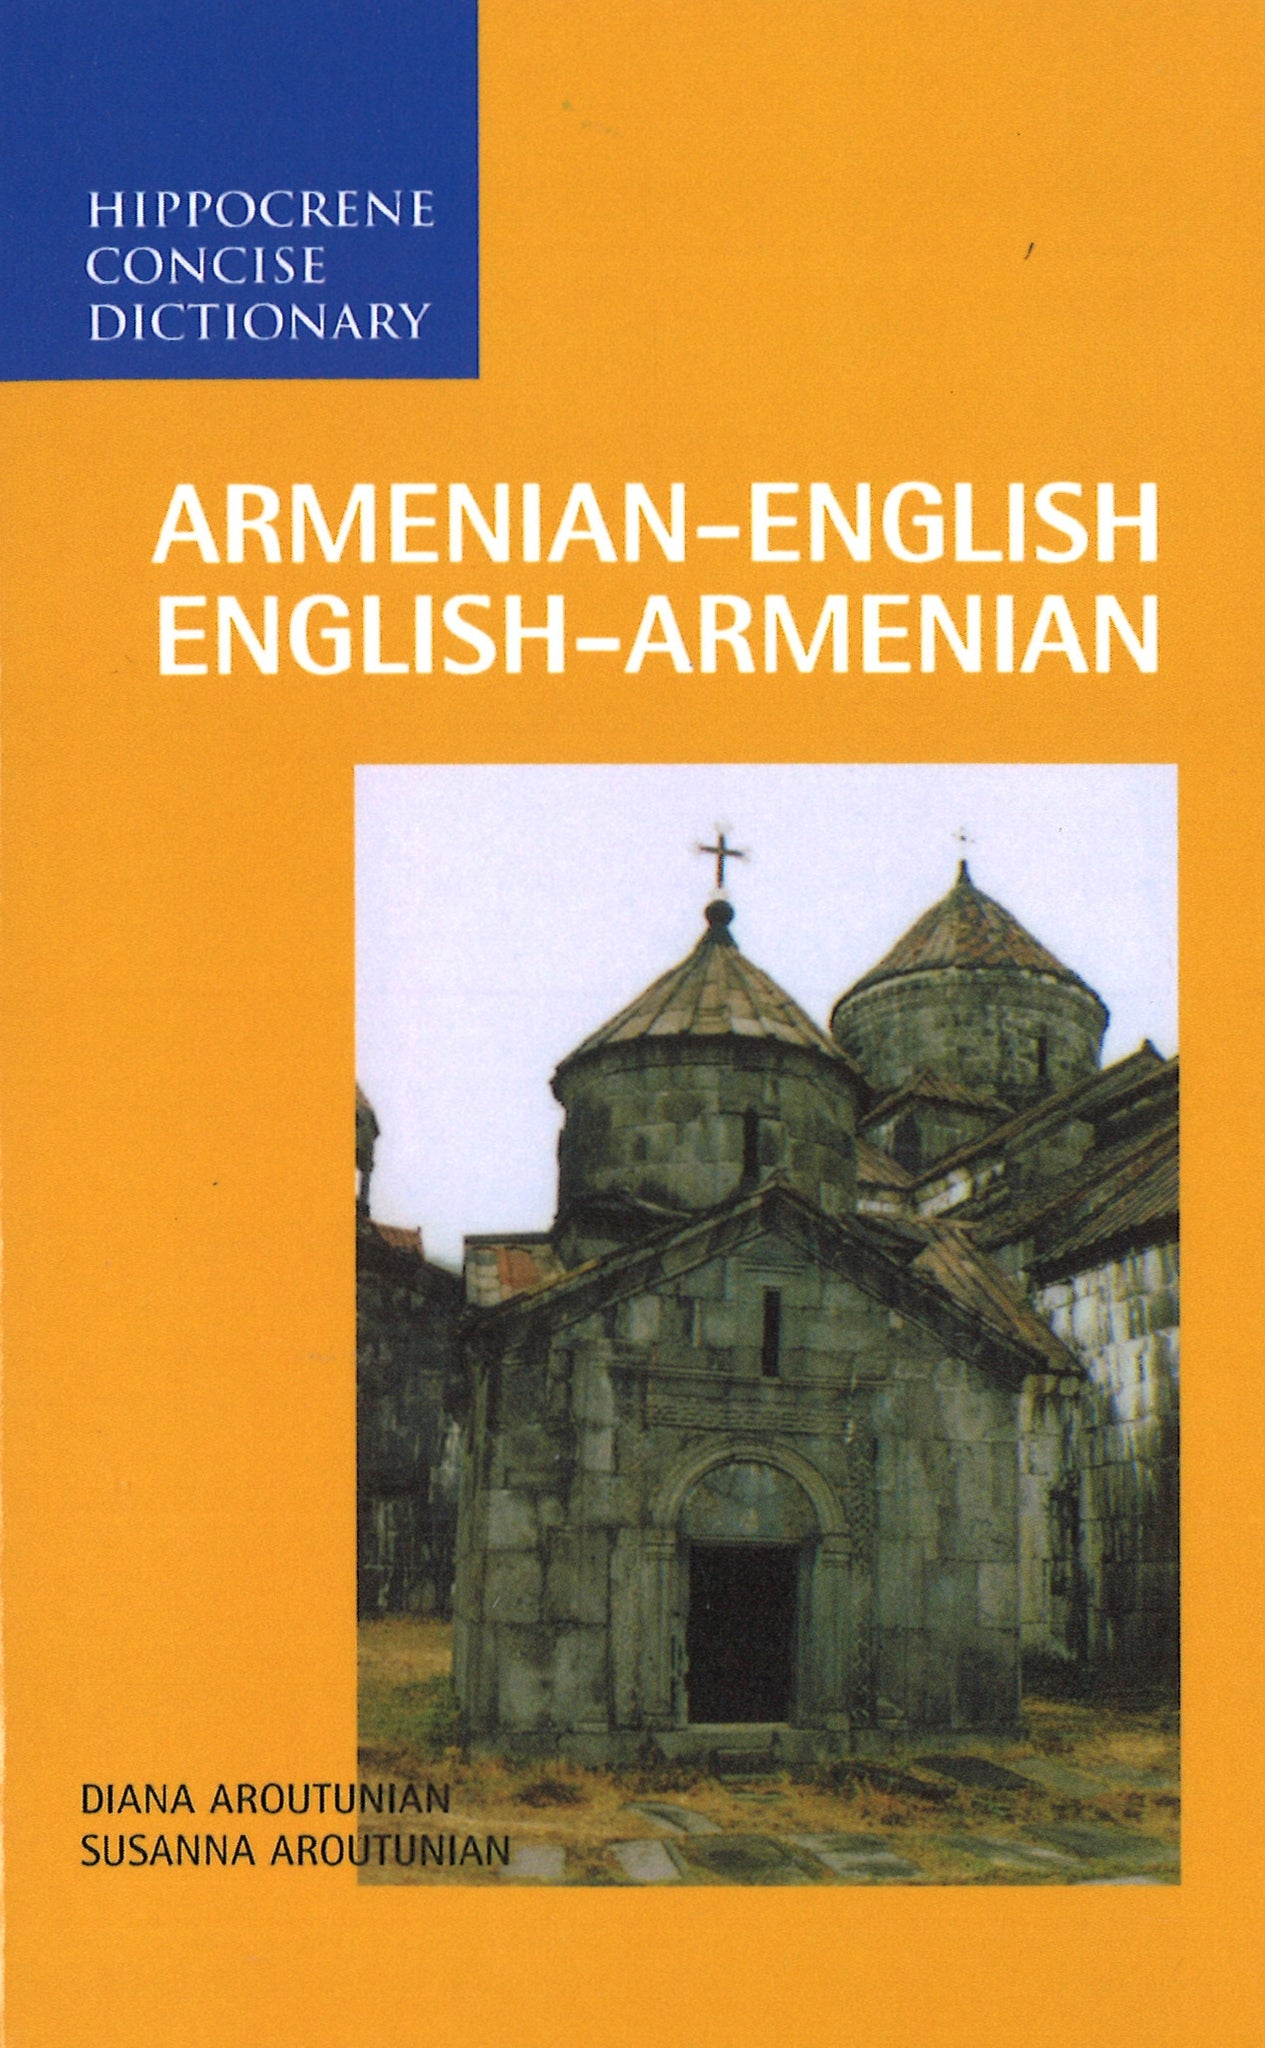 ARMENIAN-ENGLISH / ENGLISH-ARMENIAN Dictionary